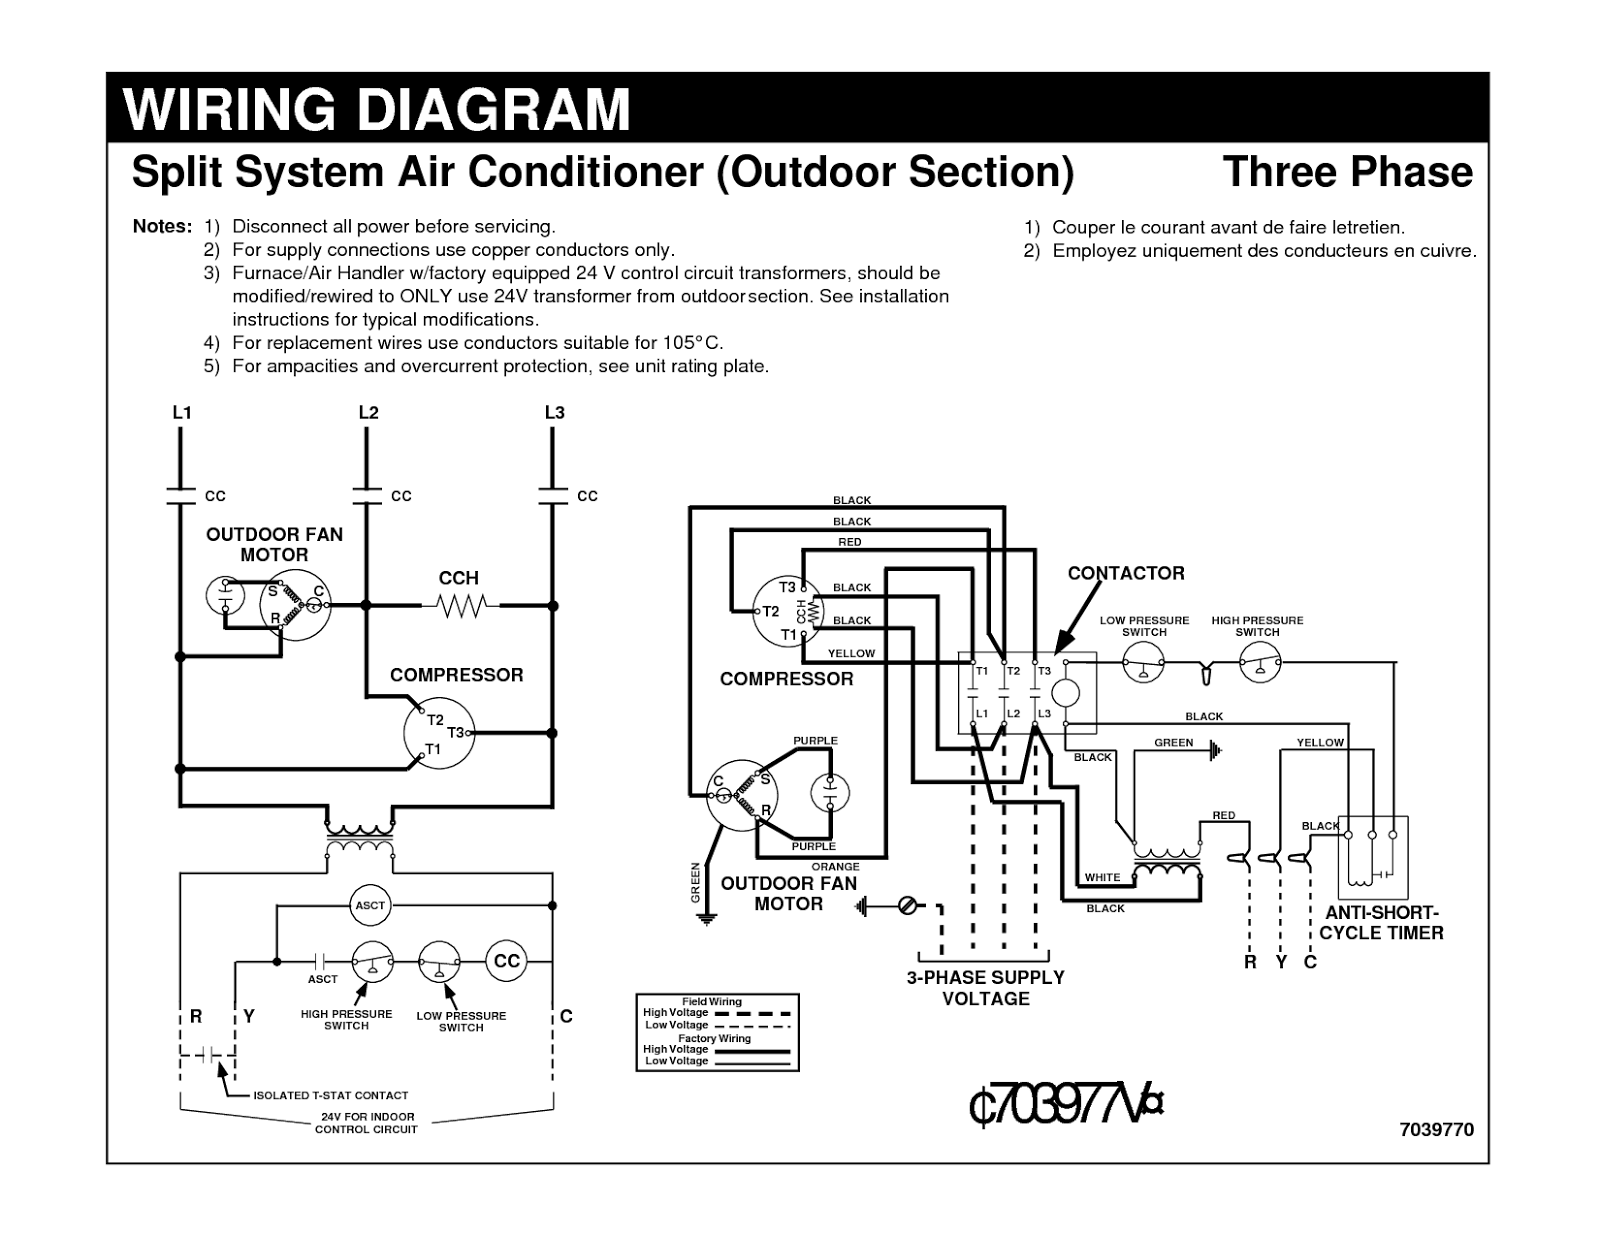 Ac Aceca Wiring Diagram : Electrical wiring diagrams for air conditioning systems